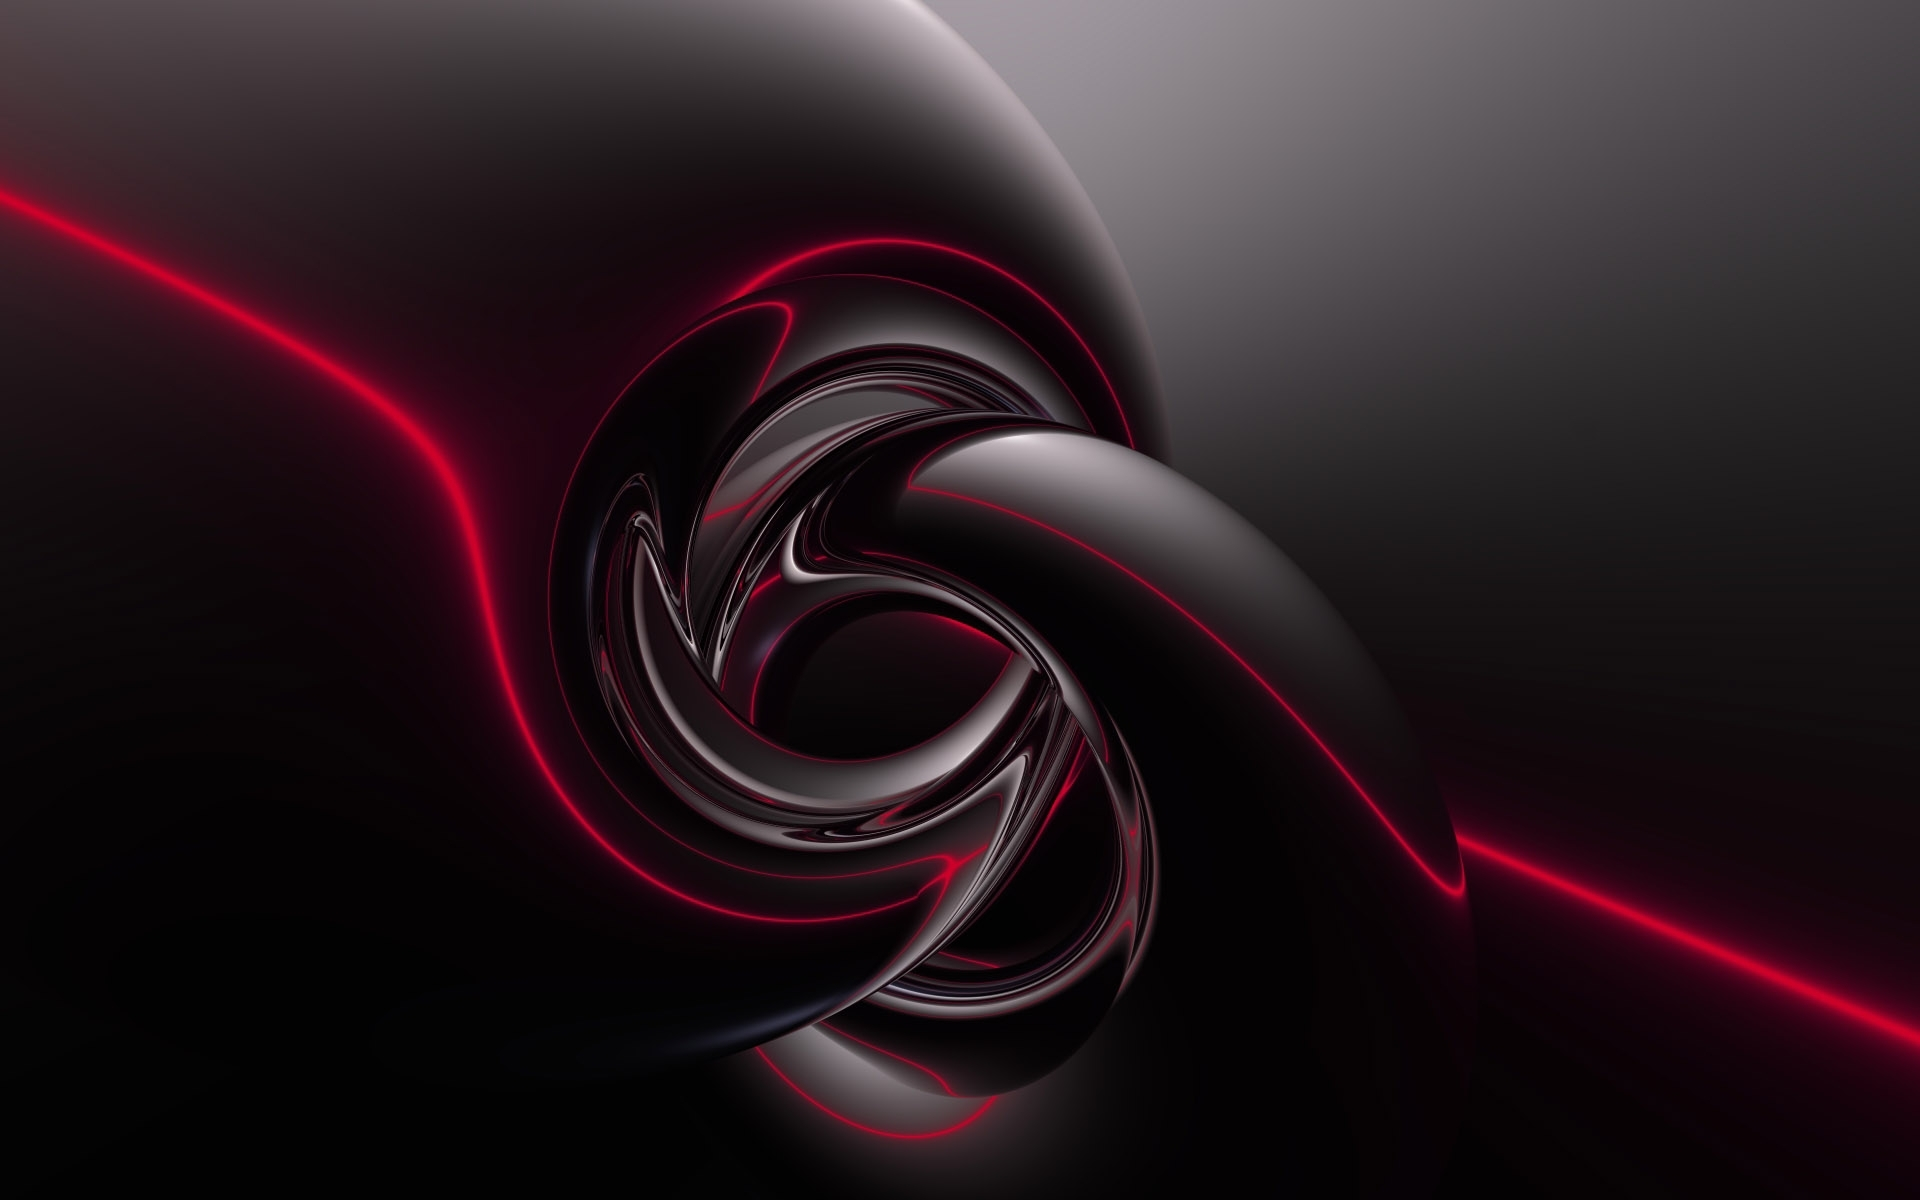 dark red and black abstract full hd fond d'écran and arrière-plan